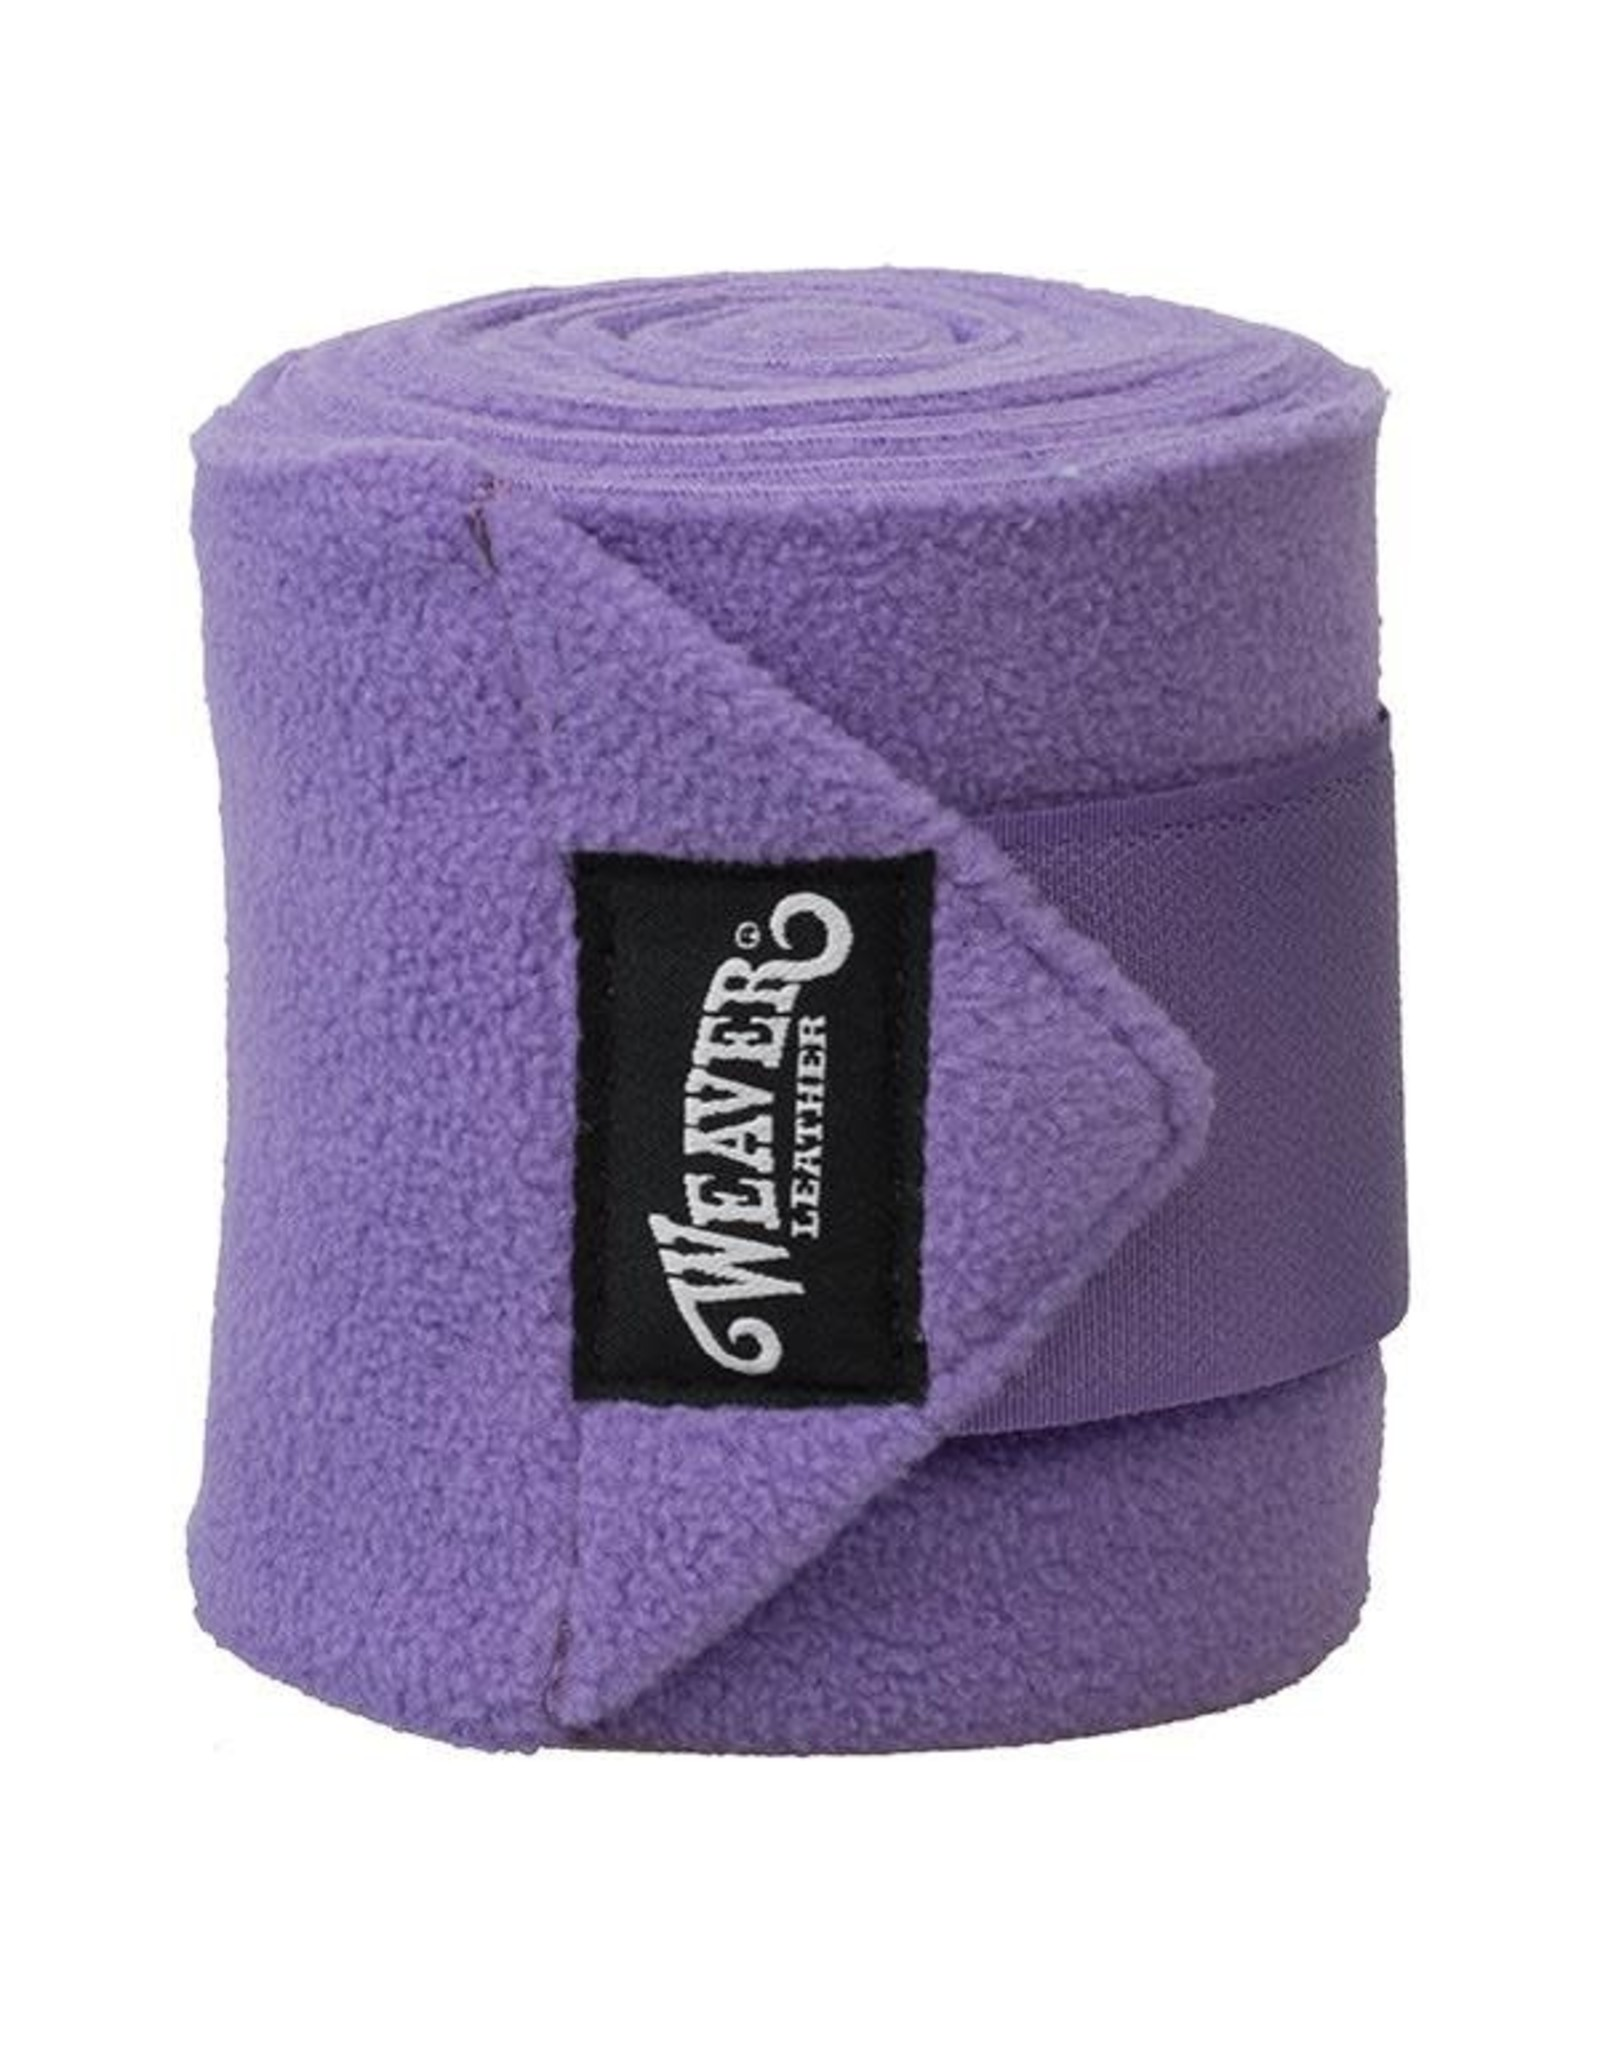 Weaver Polo Leg Wraps 4 Pack